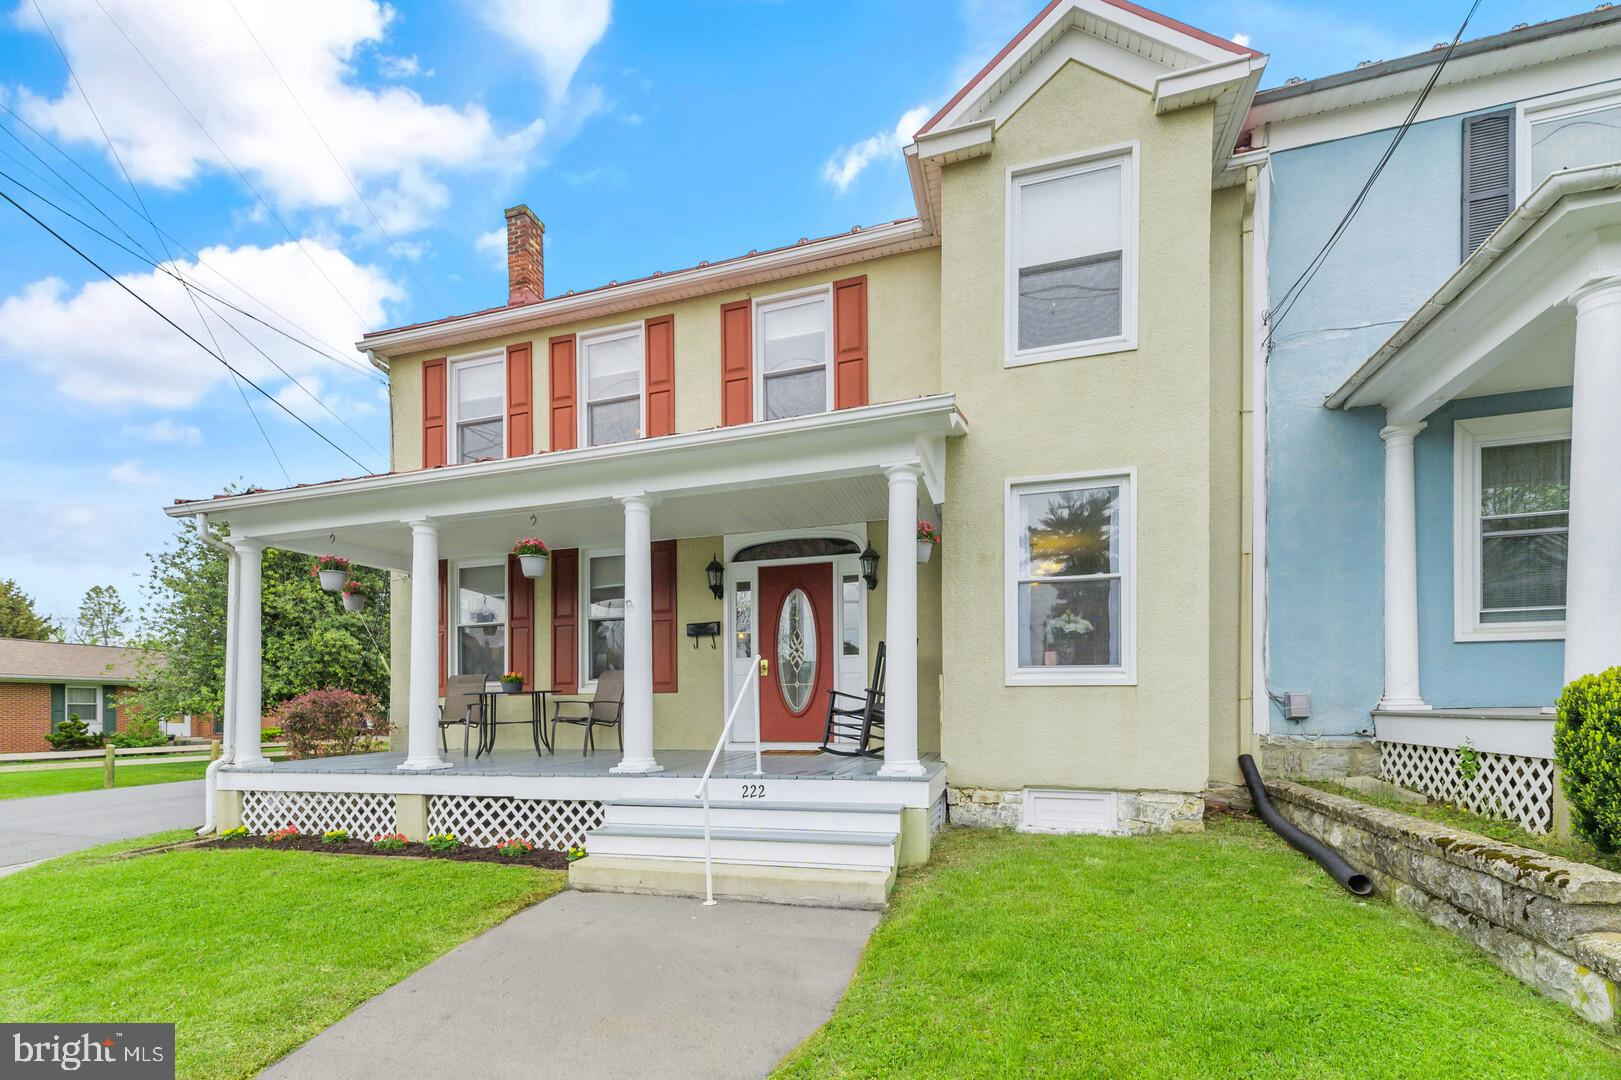 OPEN HOUSE, Sunday, May 16th from 1:00pm-3:00pm! Now is your chance to own and live in your own piec